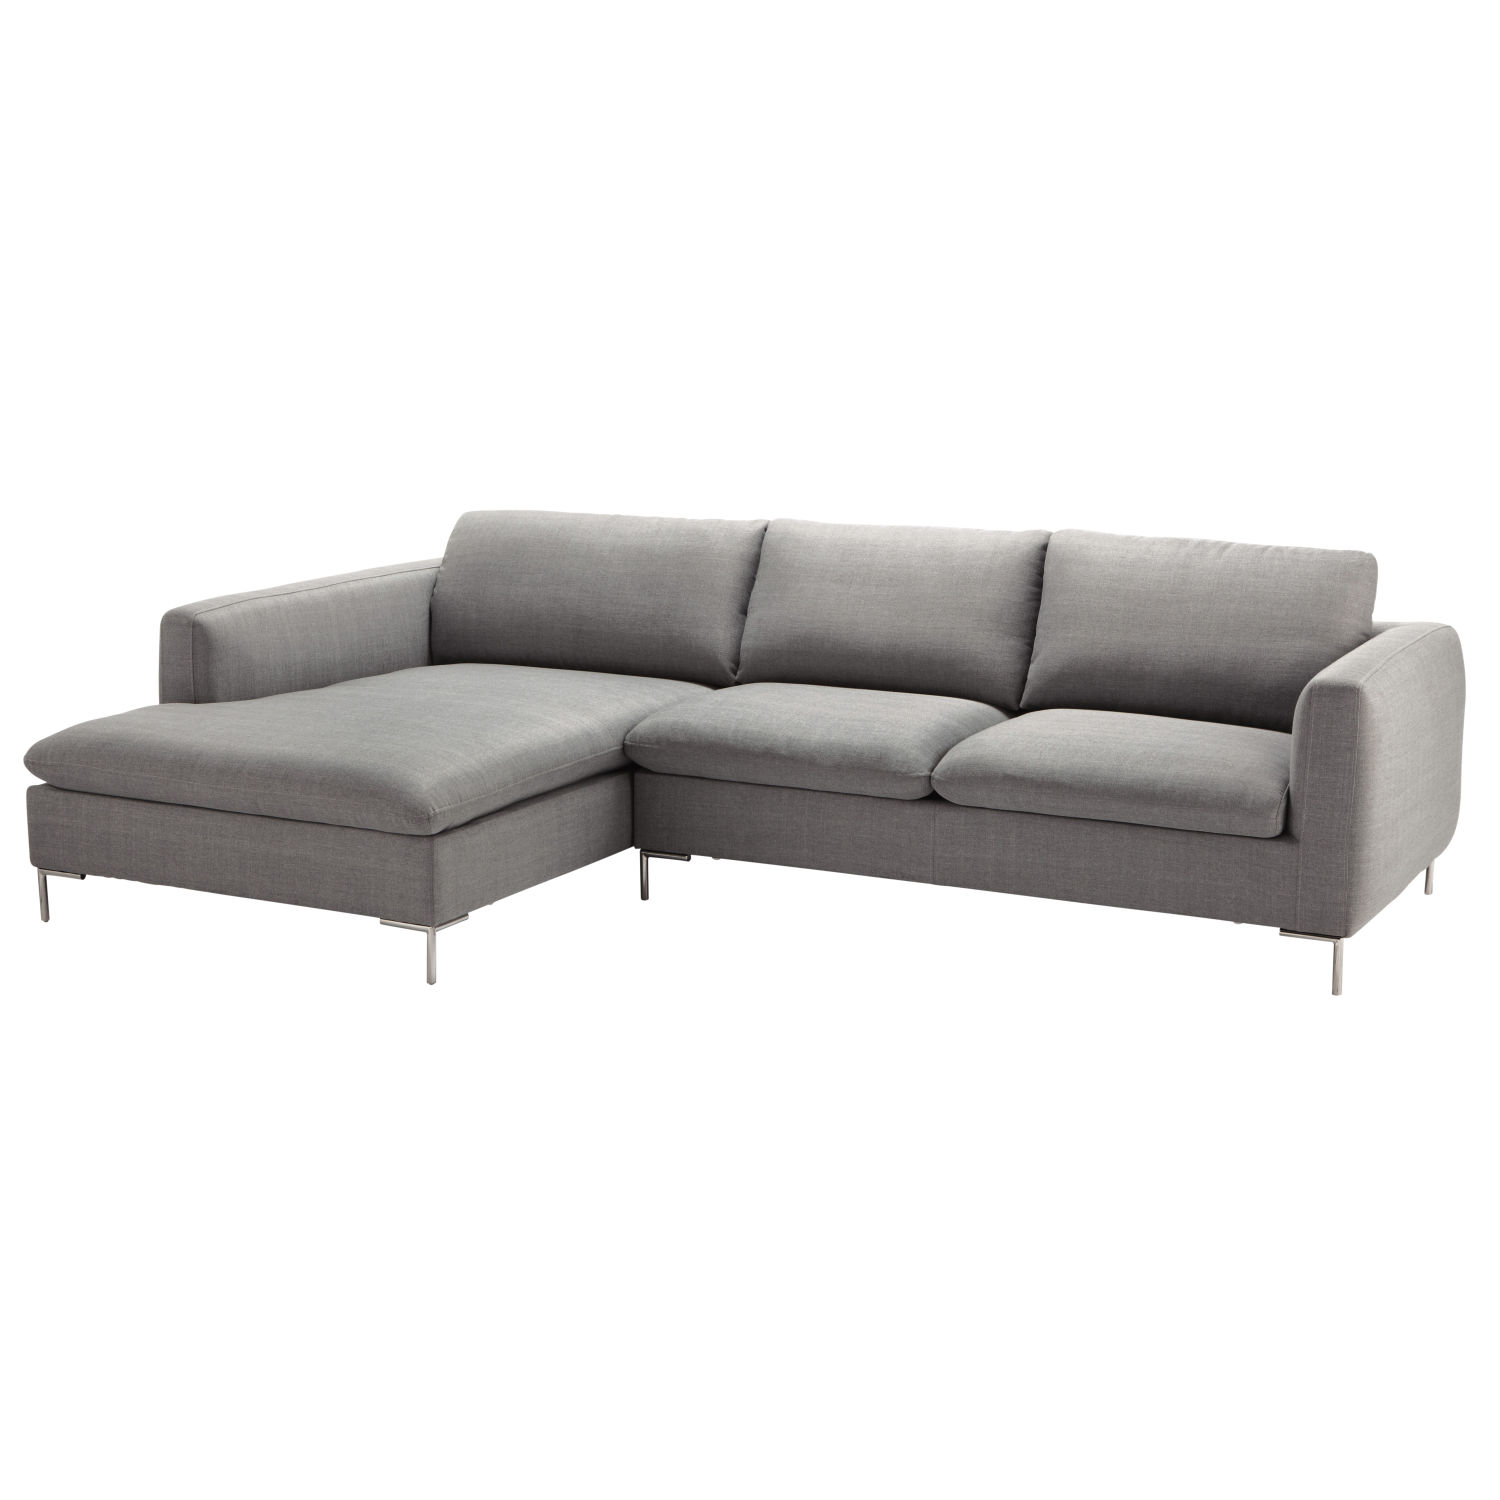 Maison Du Monde Schlafsofa 5 Seater Fabric Left Corner Sofa In Light Grey Maisons Du Monde